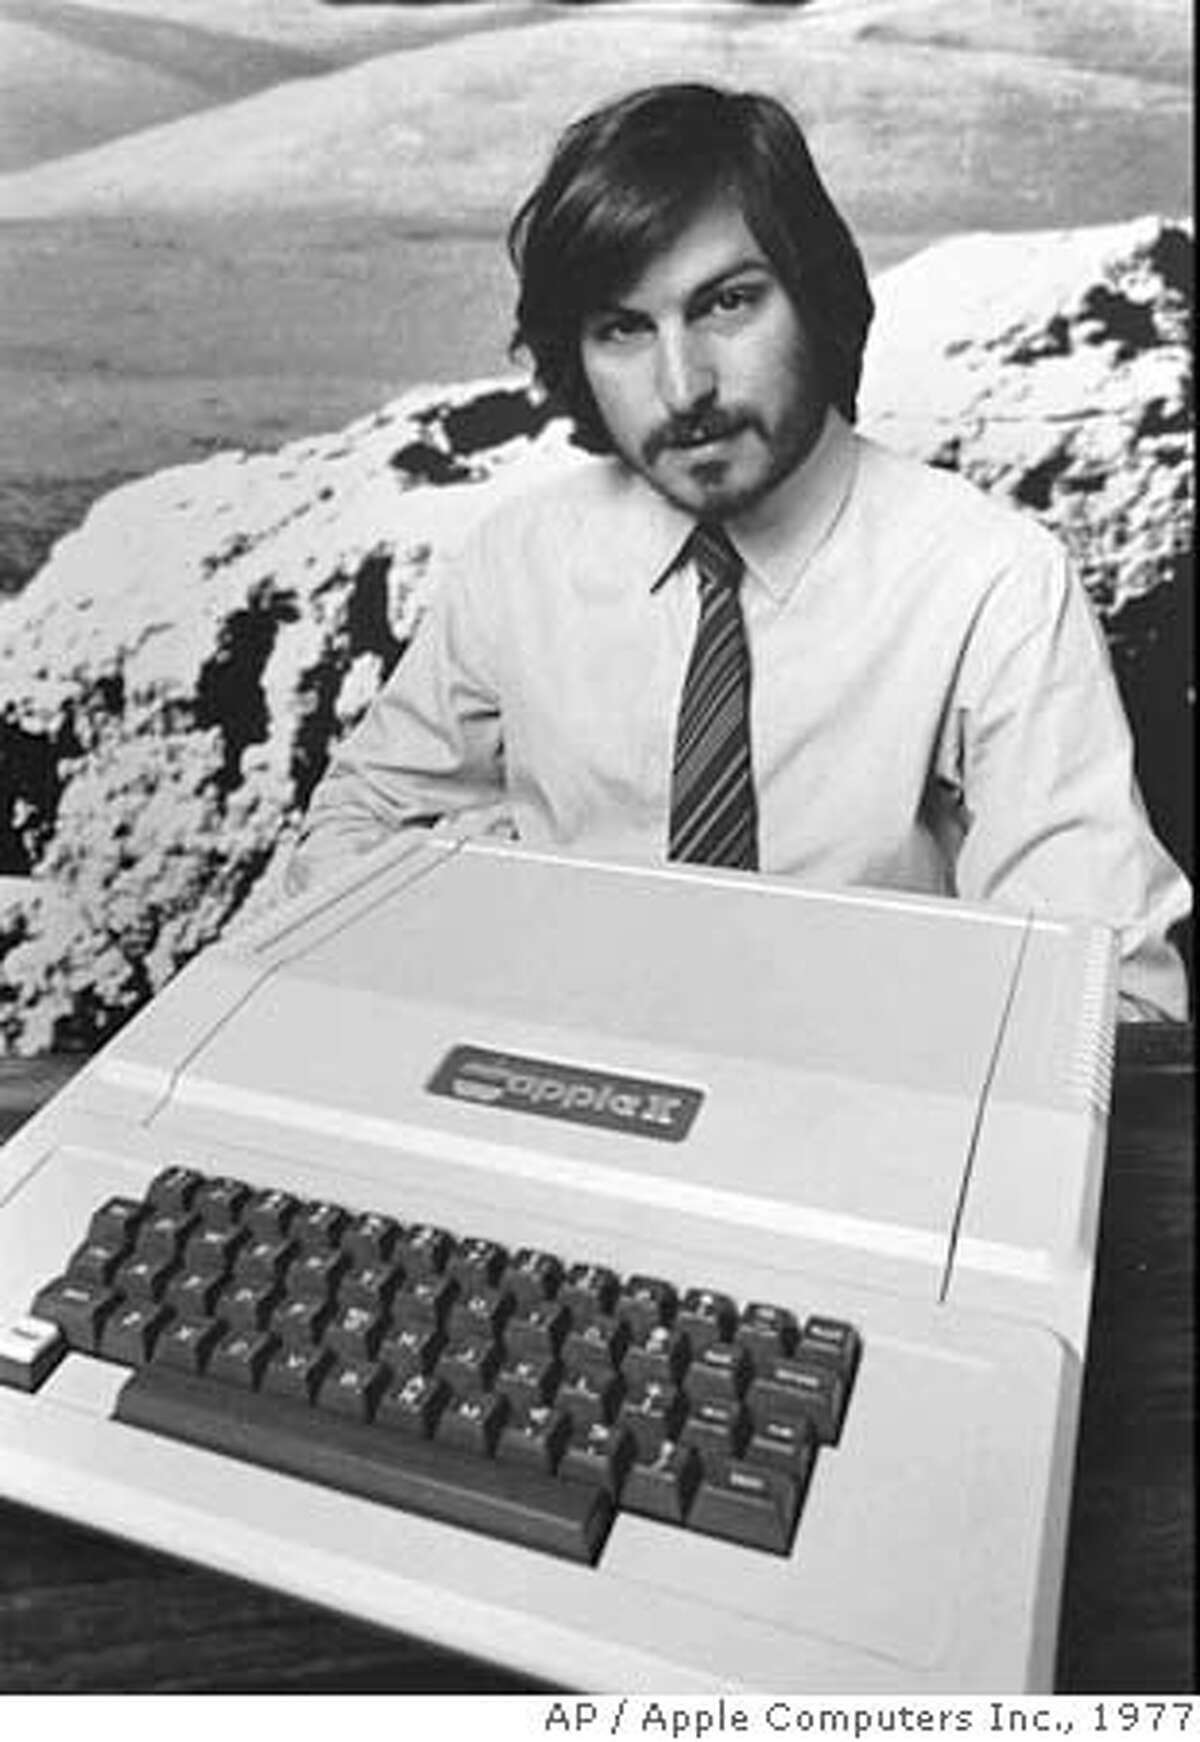 This is a 1977 photo of Apple Computer Inc. founder Steve Jobs as he introduces the new Apple II in Cupertino, Calif. Apple Computer was formed 20 years ago, on April Fool's Day in 1976. (AP Photo/Apple Computers Inc., file) Ran on: 01-09-2006